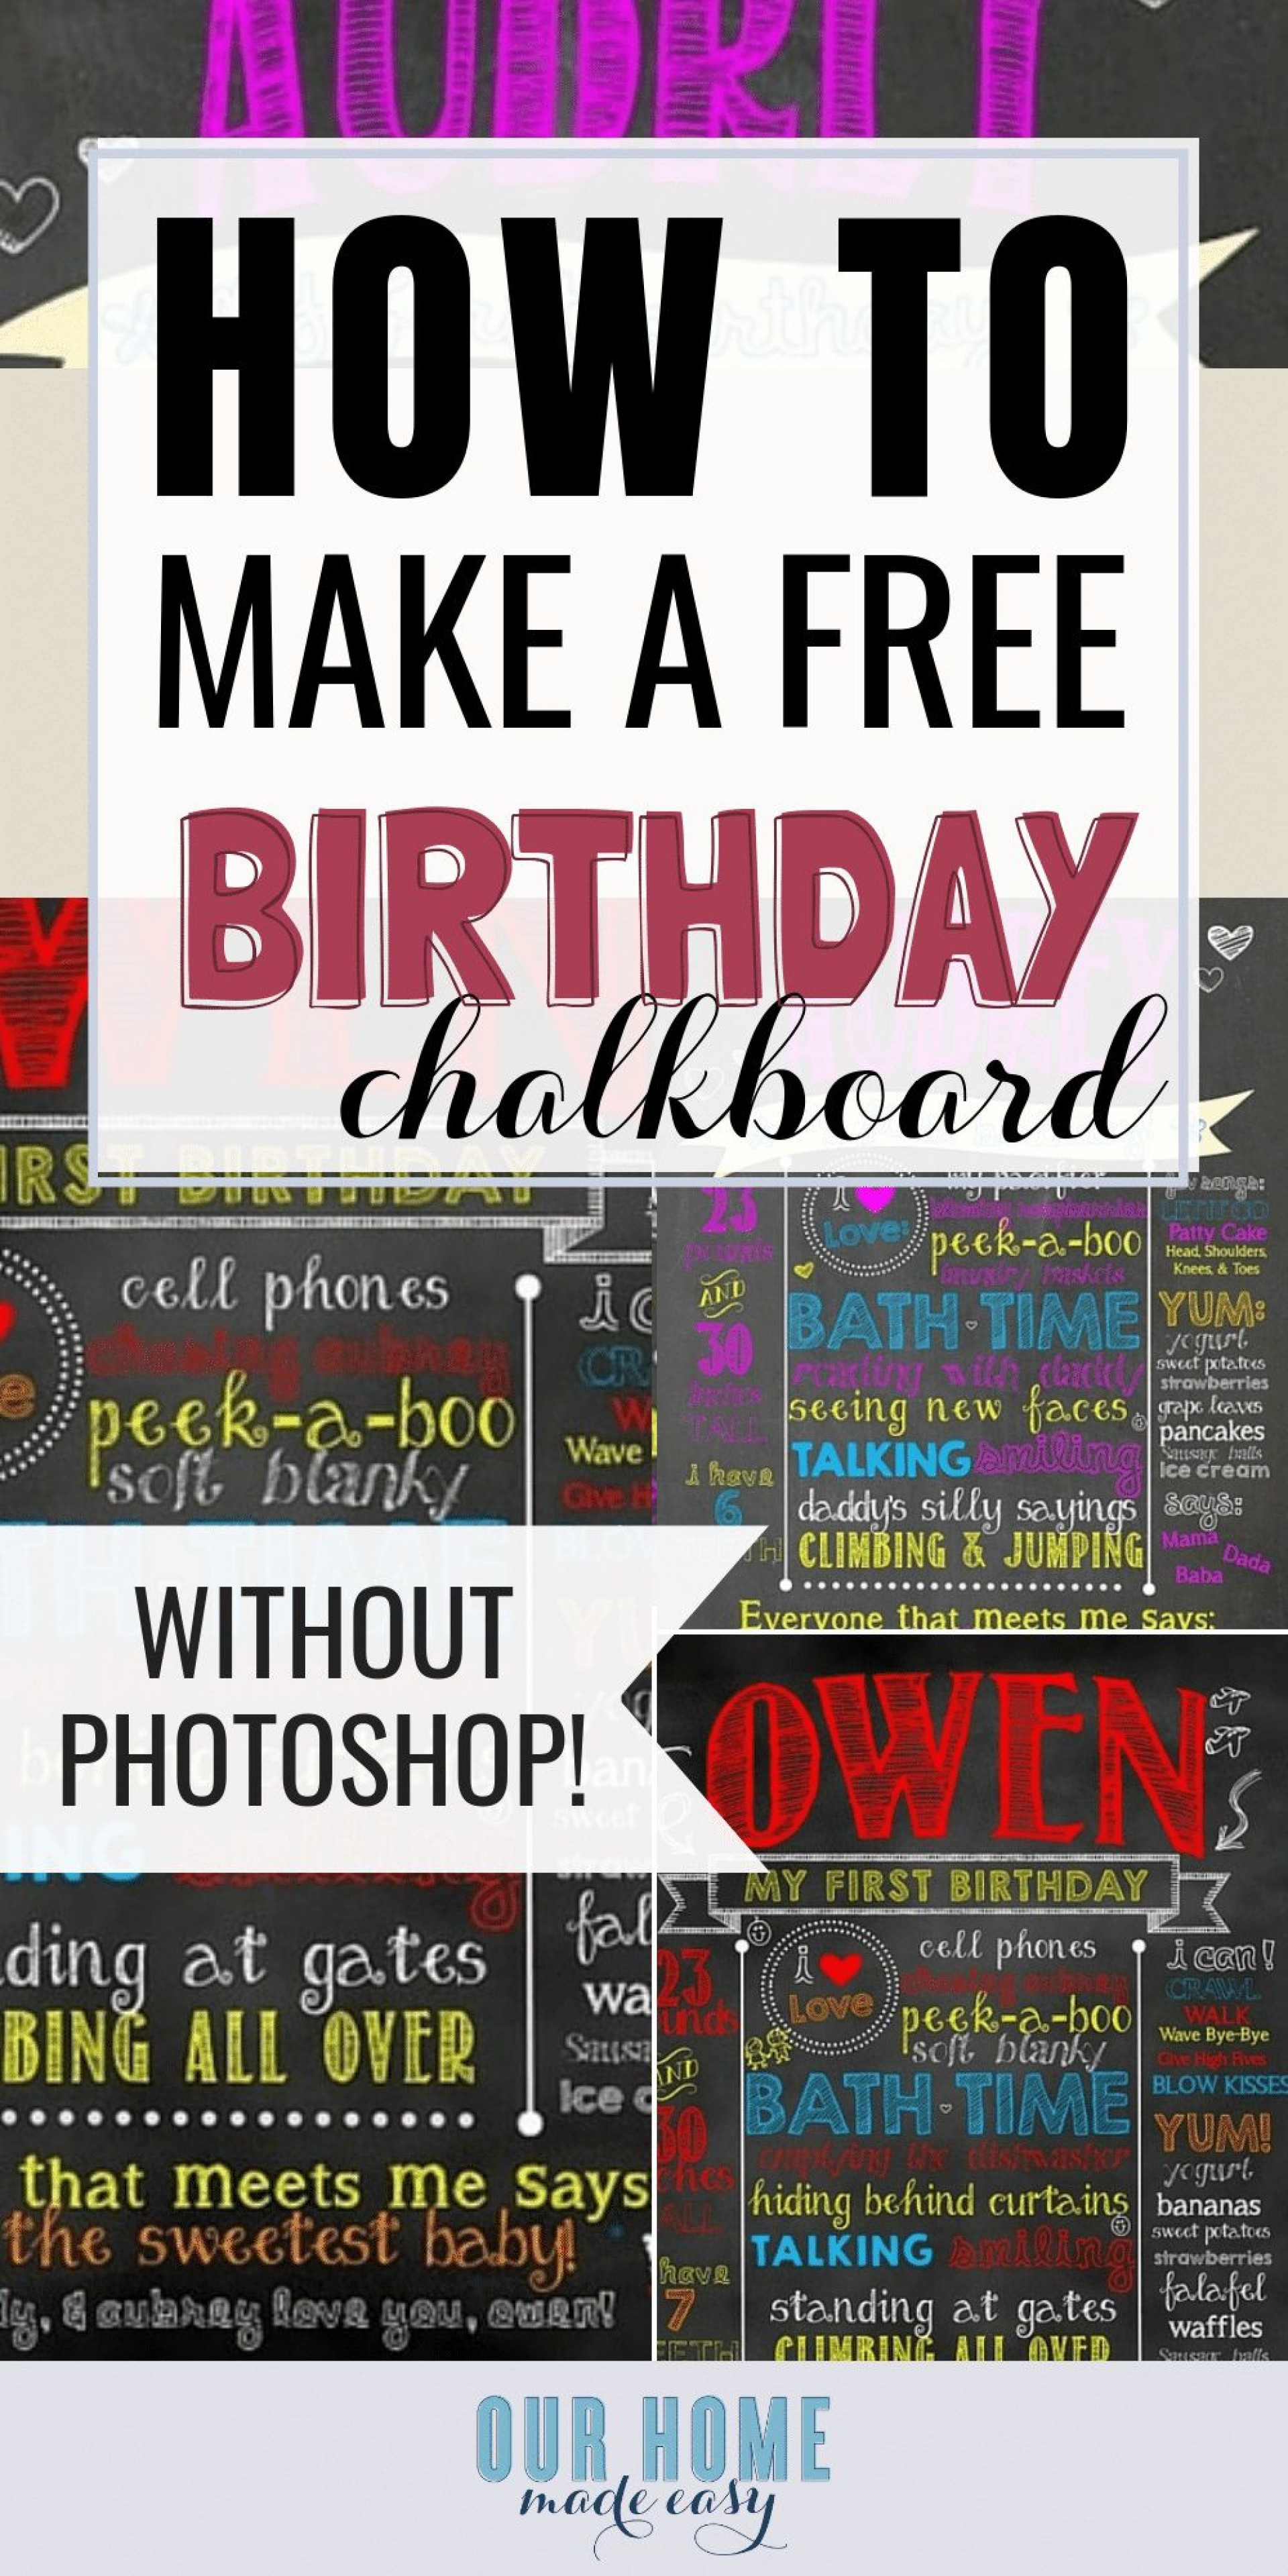 007 Exceptional Free Birthday Chalkboard Template Highest Clarity  First Printable Baby1920